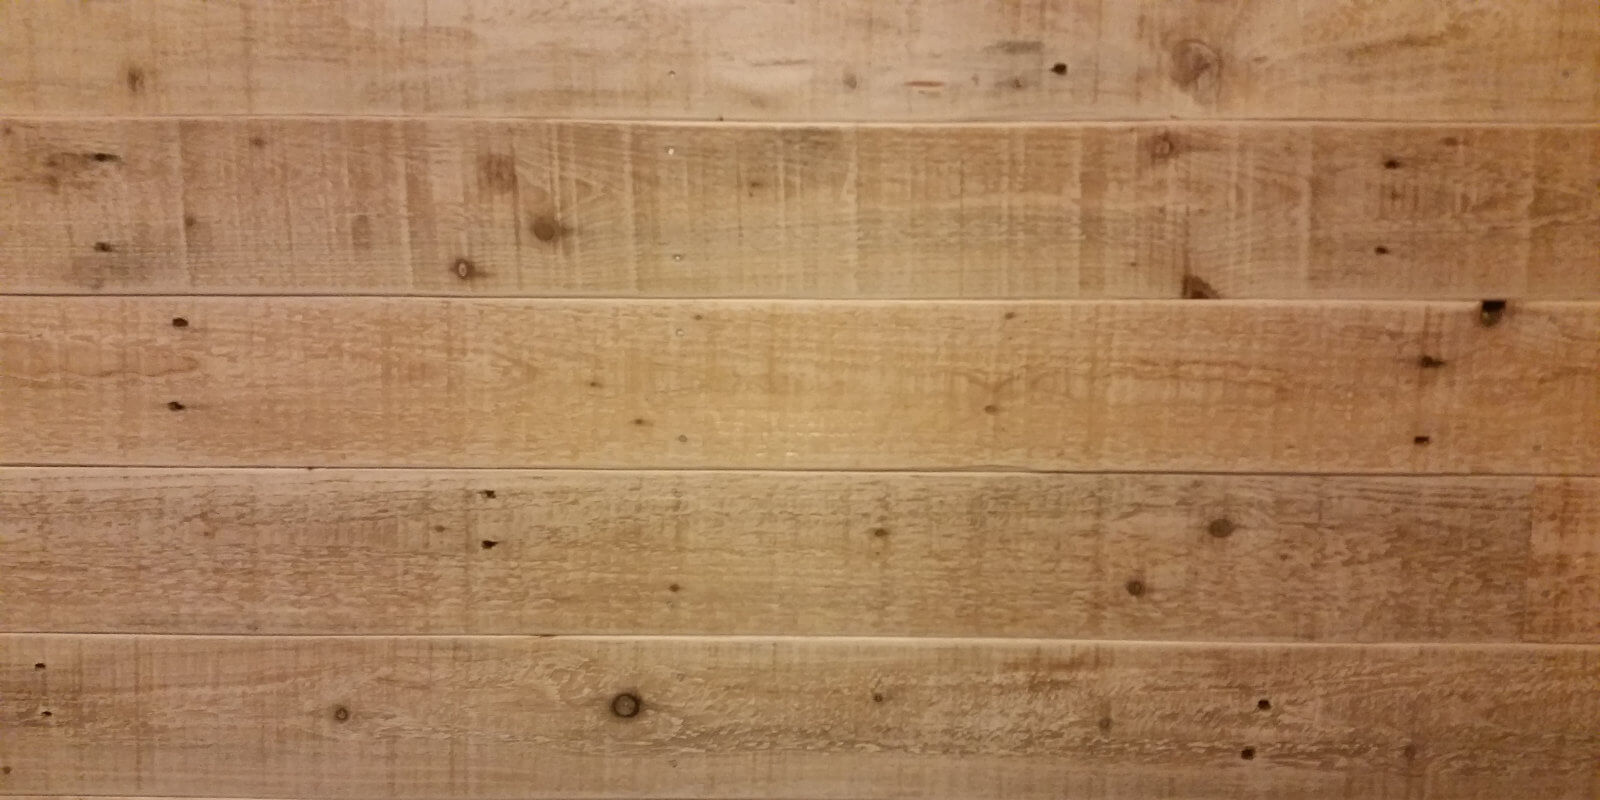 wood boards fit tightly